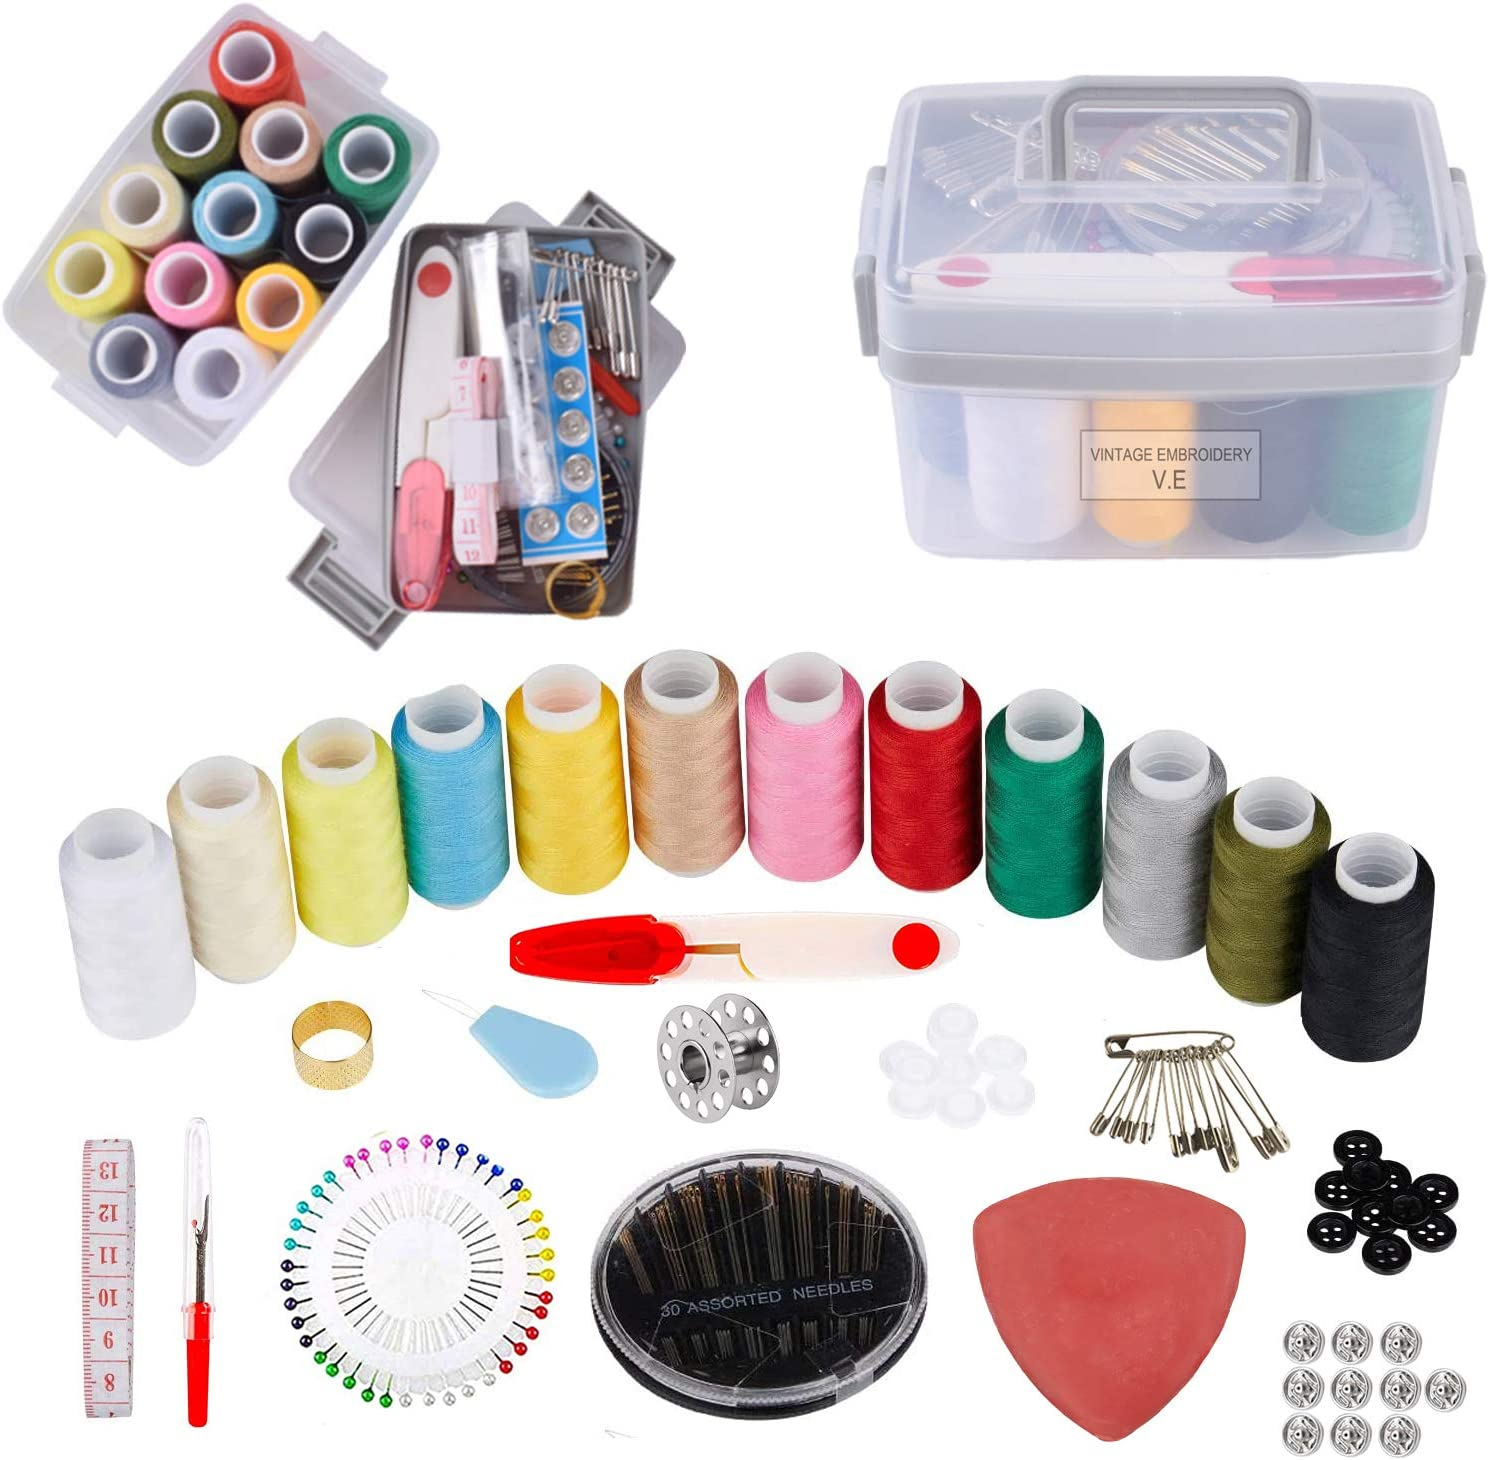 Premium Sewing Kit Set - T Supplies Free Shipping Cheap Bargain Gift Portable Our shop most popular Beginner for